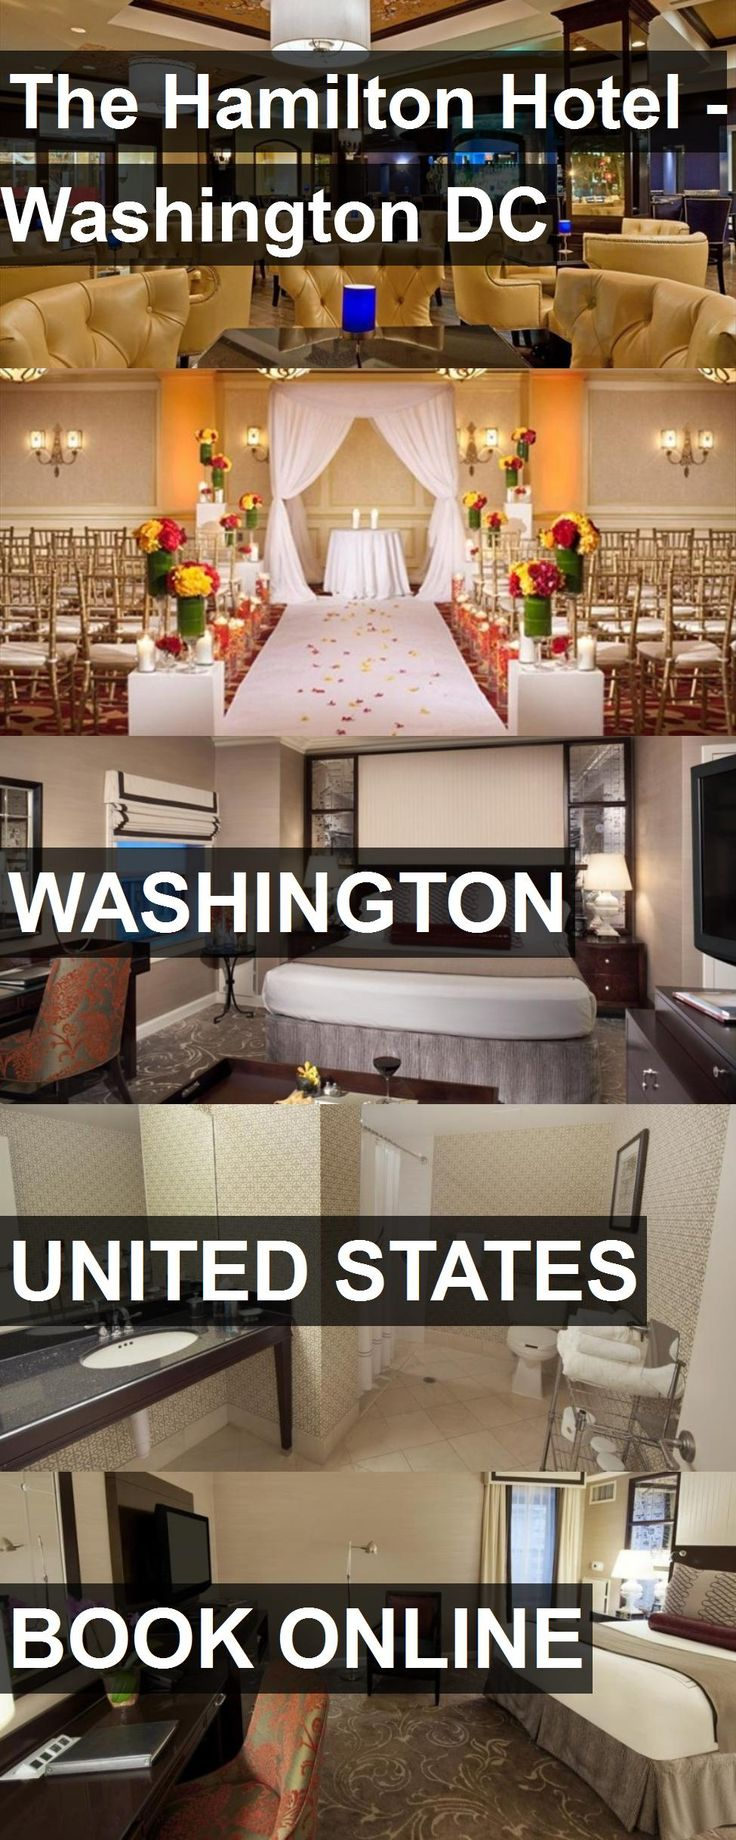 The Hamilton Hotel - Washington DC in Washington, United States. For more information, photos, reviews and best prices please follow the link. #UnitedStates #Washington #travel #vacation #hotel